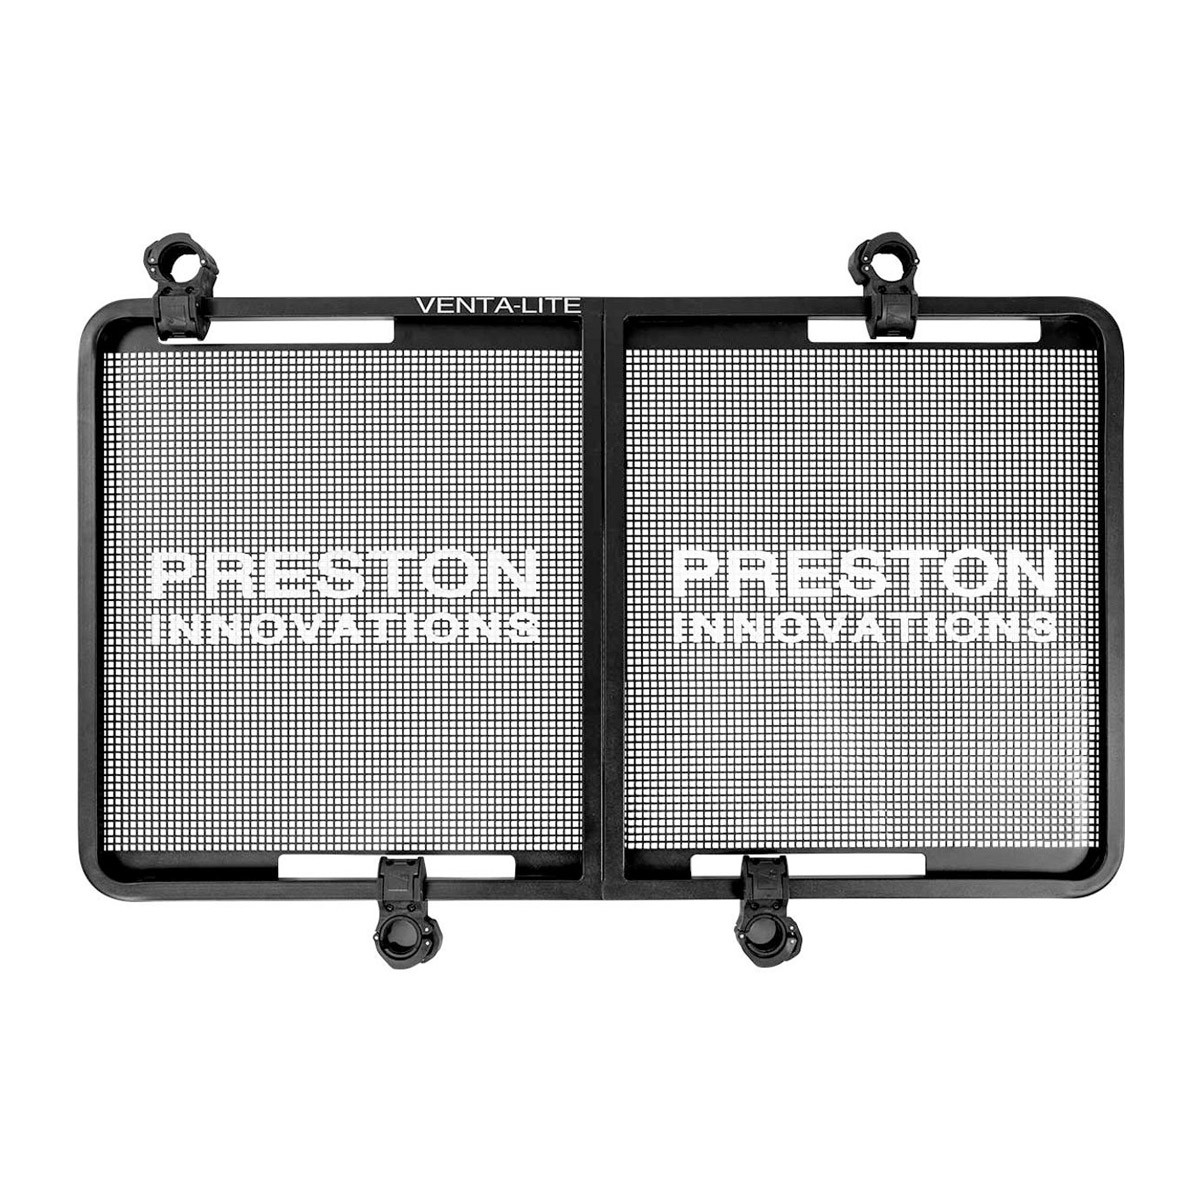 Preston Offbox 36 Venta-Lite Side Tray XL